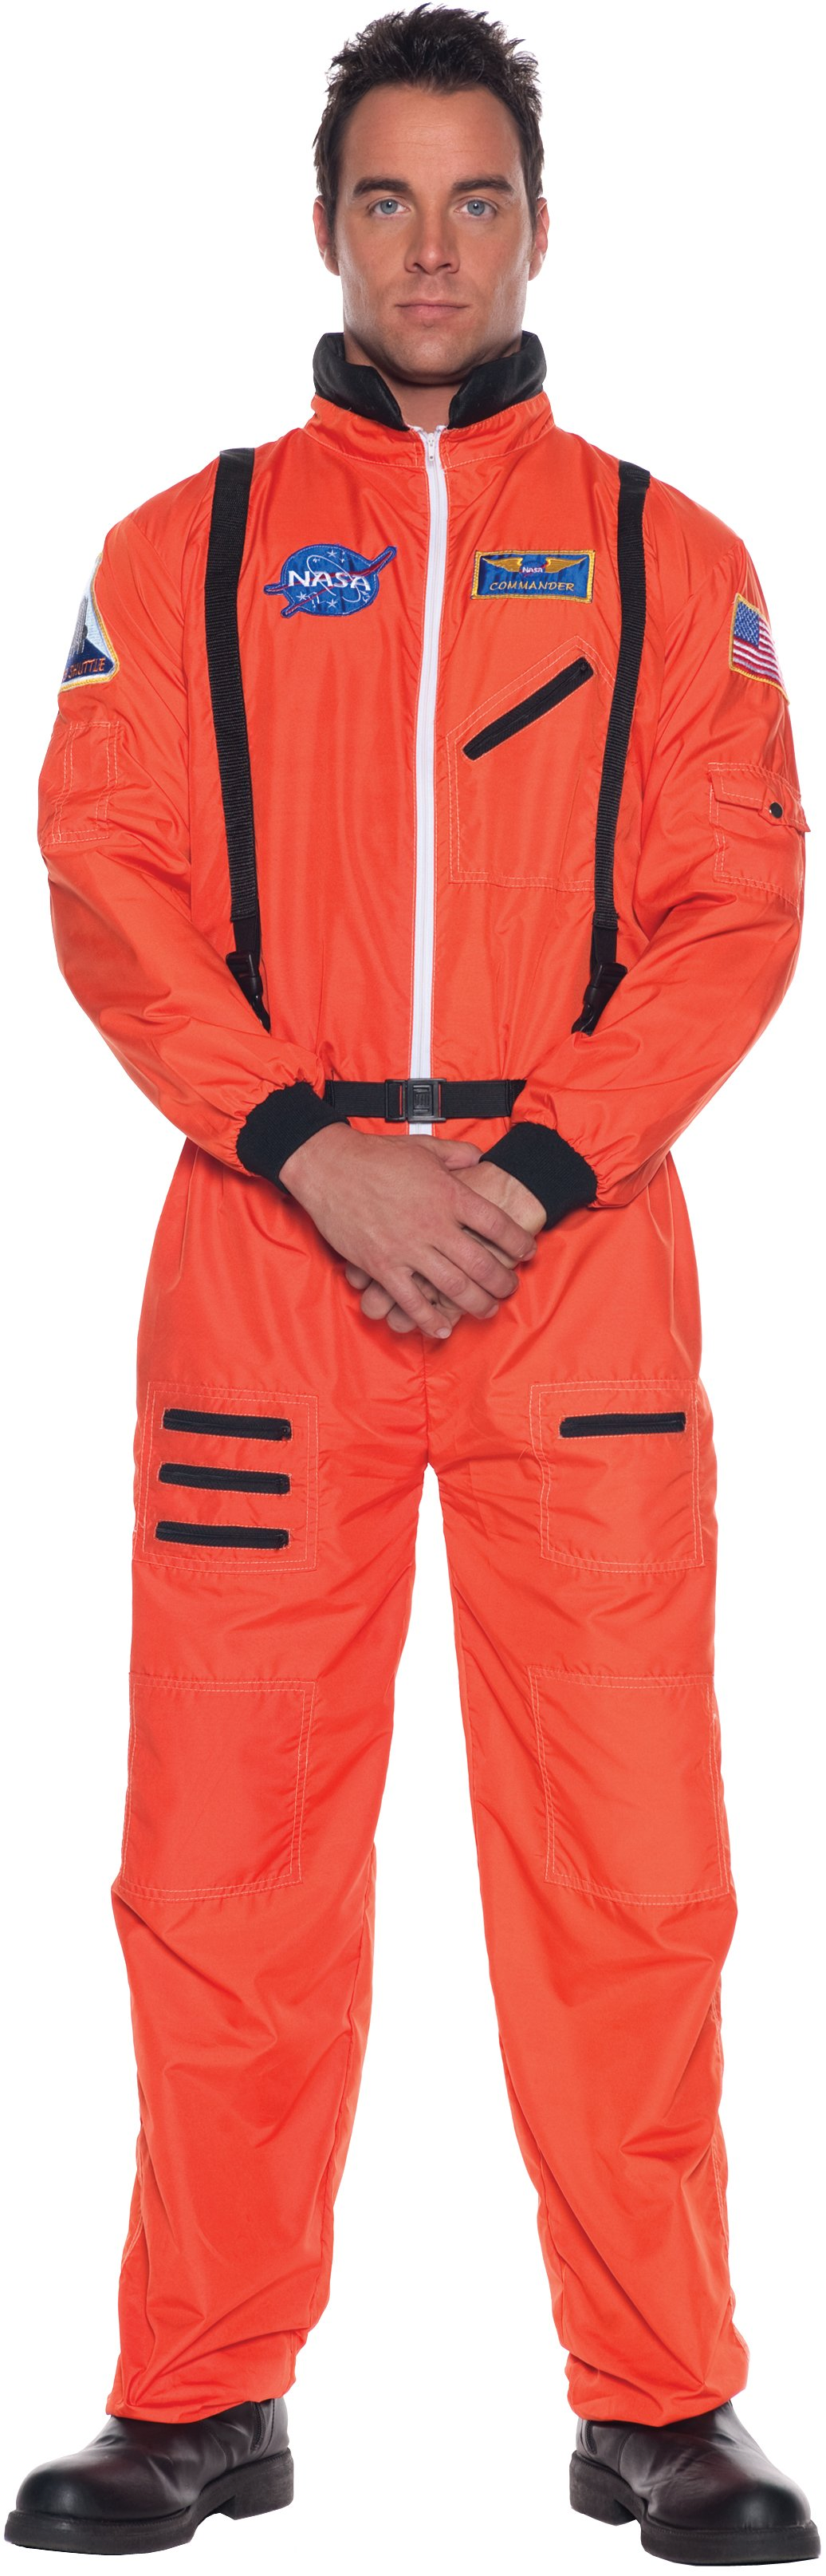 Astronaut (Orange) Adult Costume